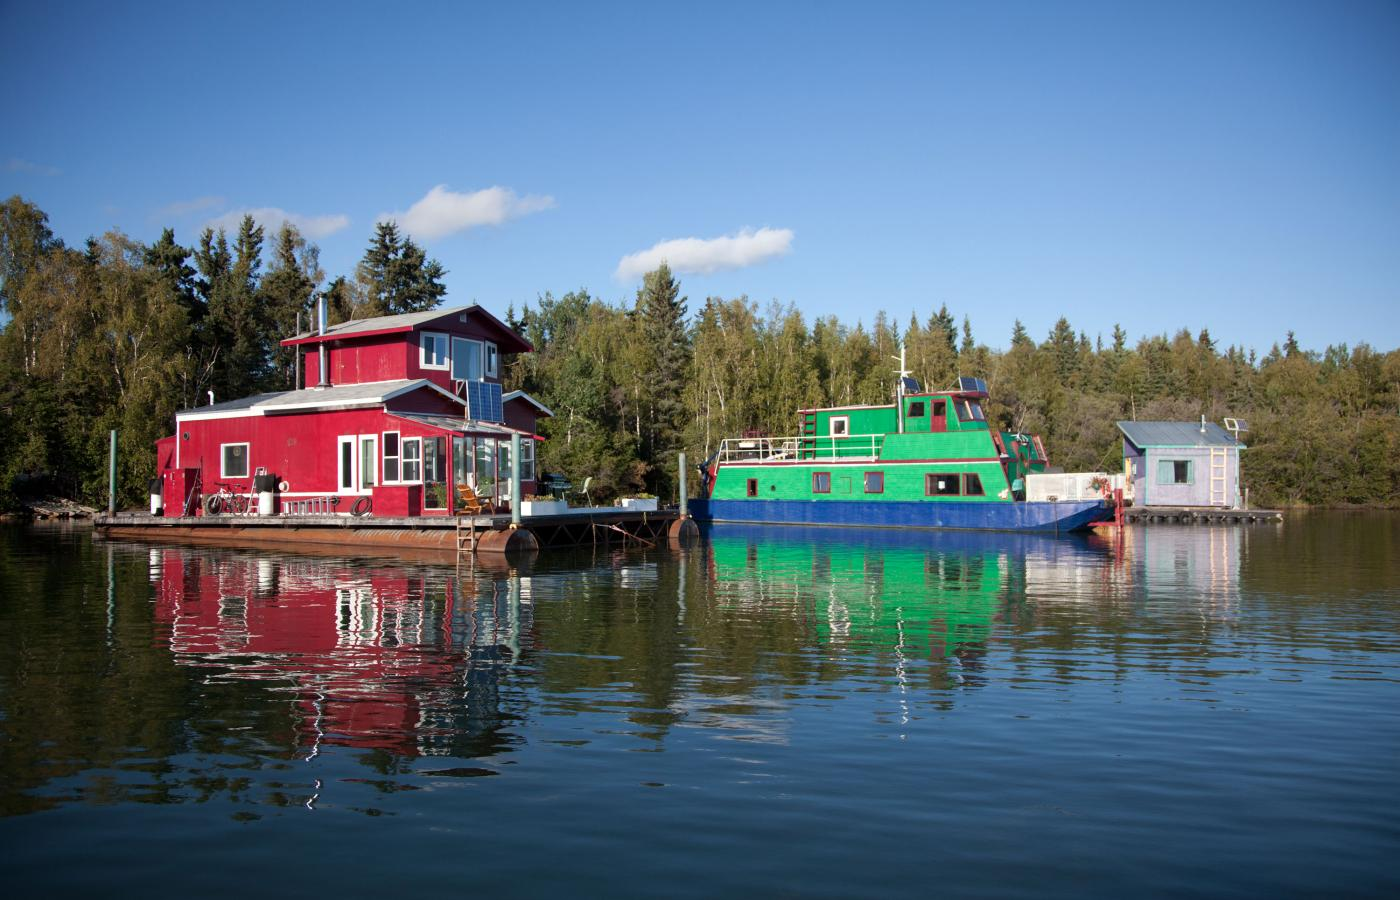 Houseboats on Great Slave Lake's Yellowknife Bay.